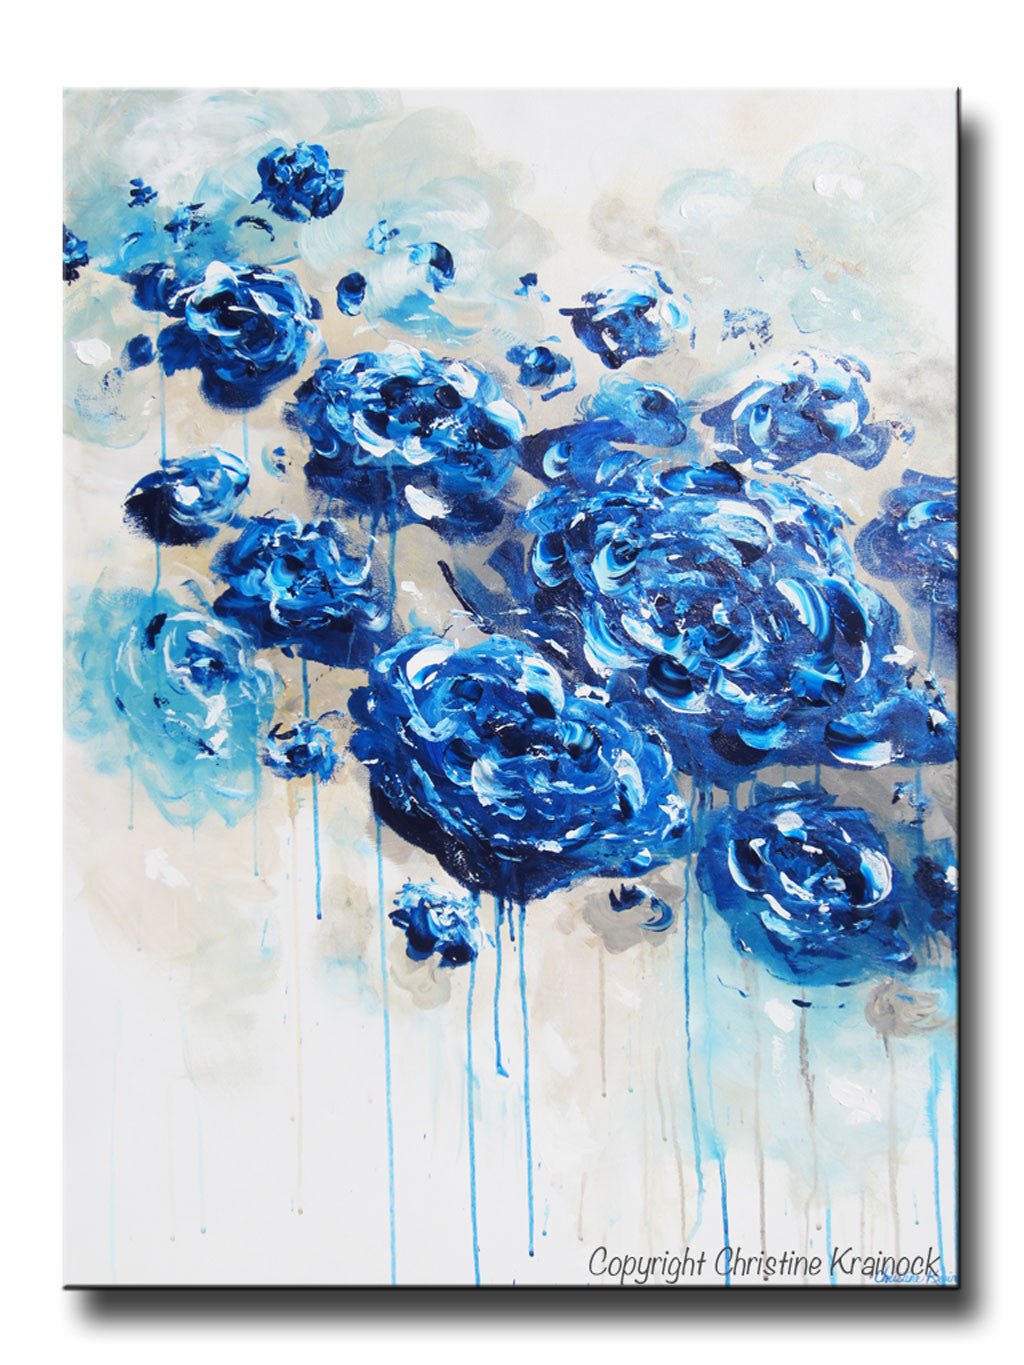 Giclee print large art abstract painting blue flowers navy blue white floral canvas print botanical giclee print large art abstract painting blue flowers navy blue white floral canvas print botanical mightylinksfo